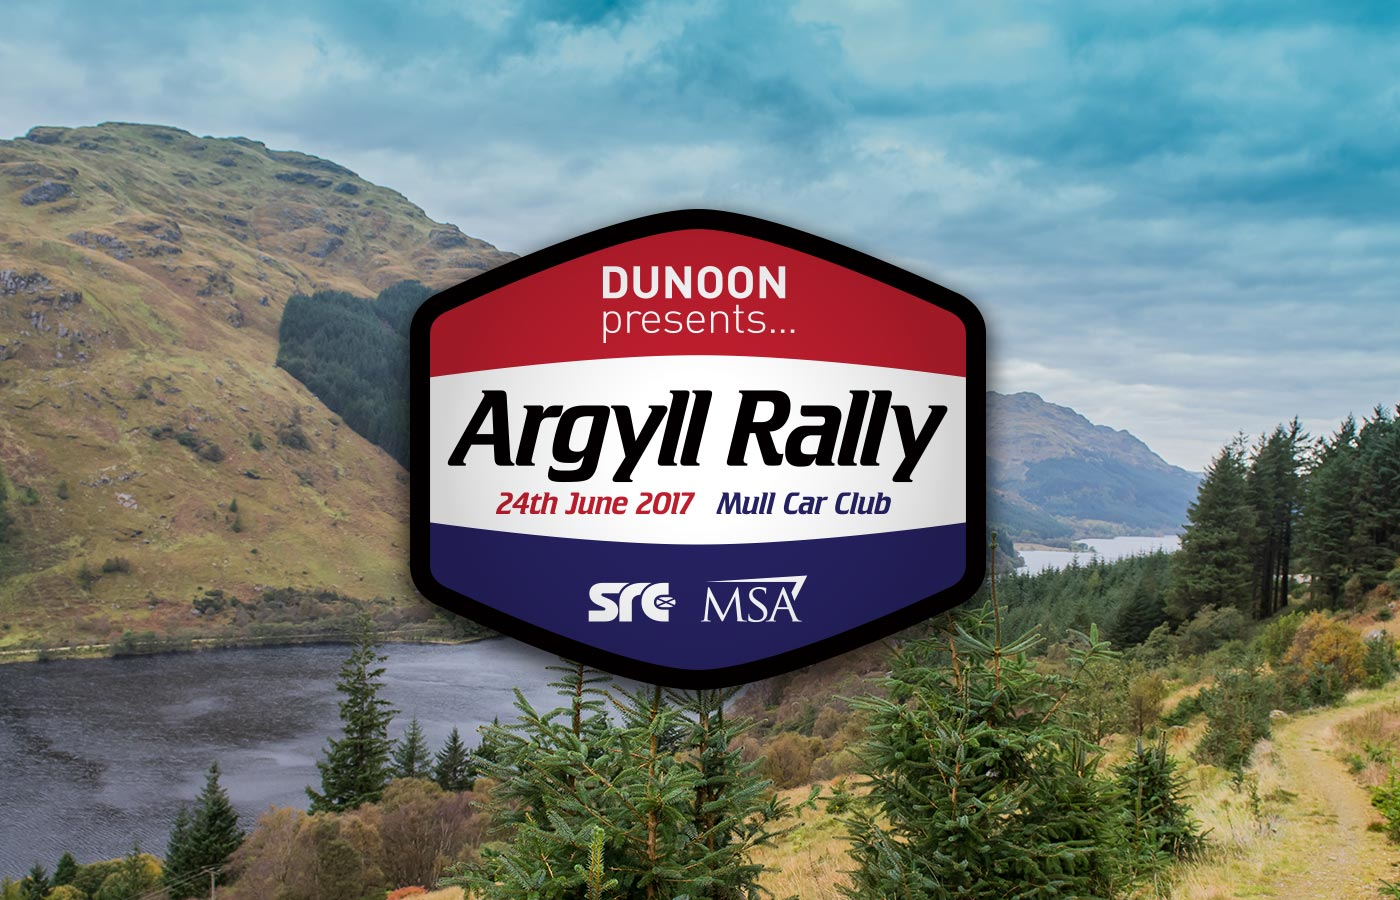 Argyll Rally Motorsport Website Design